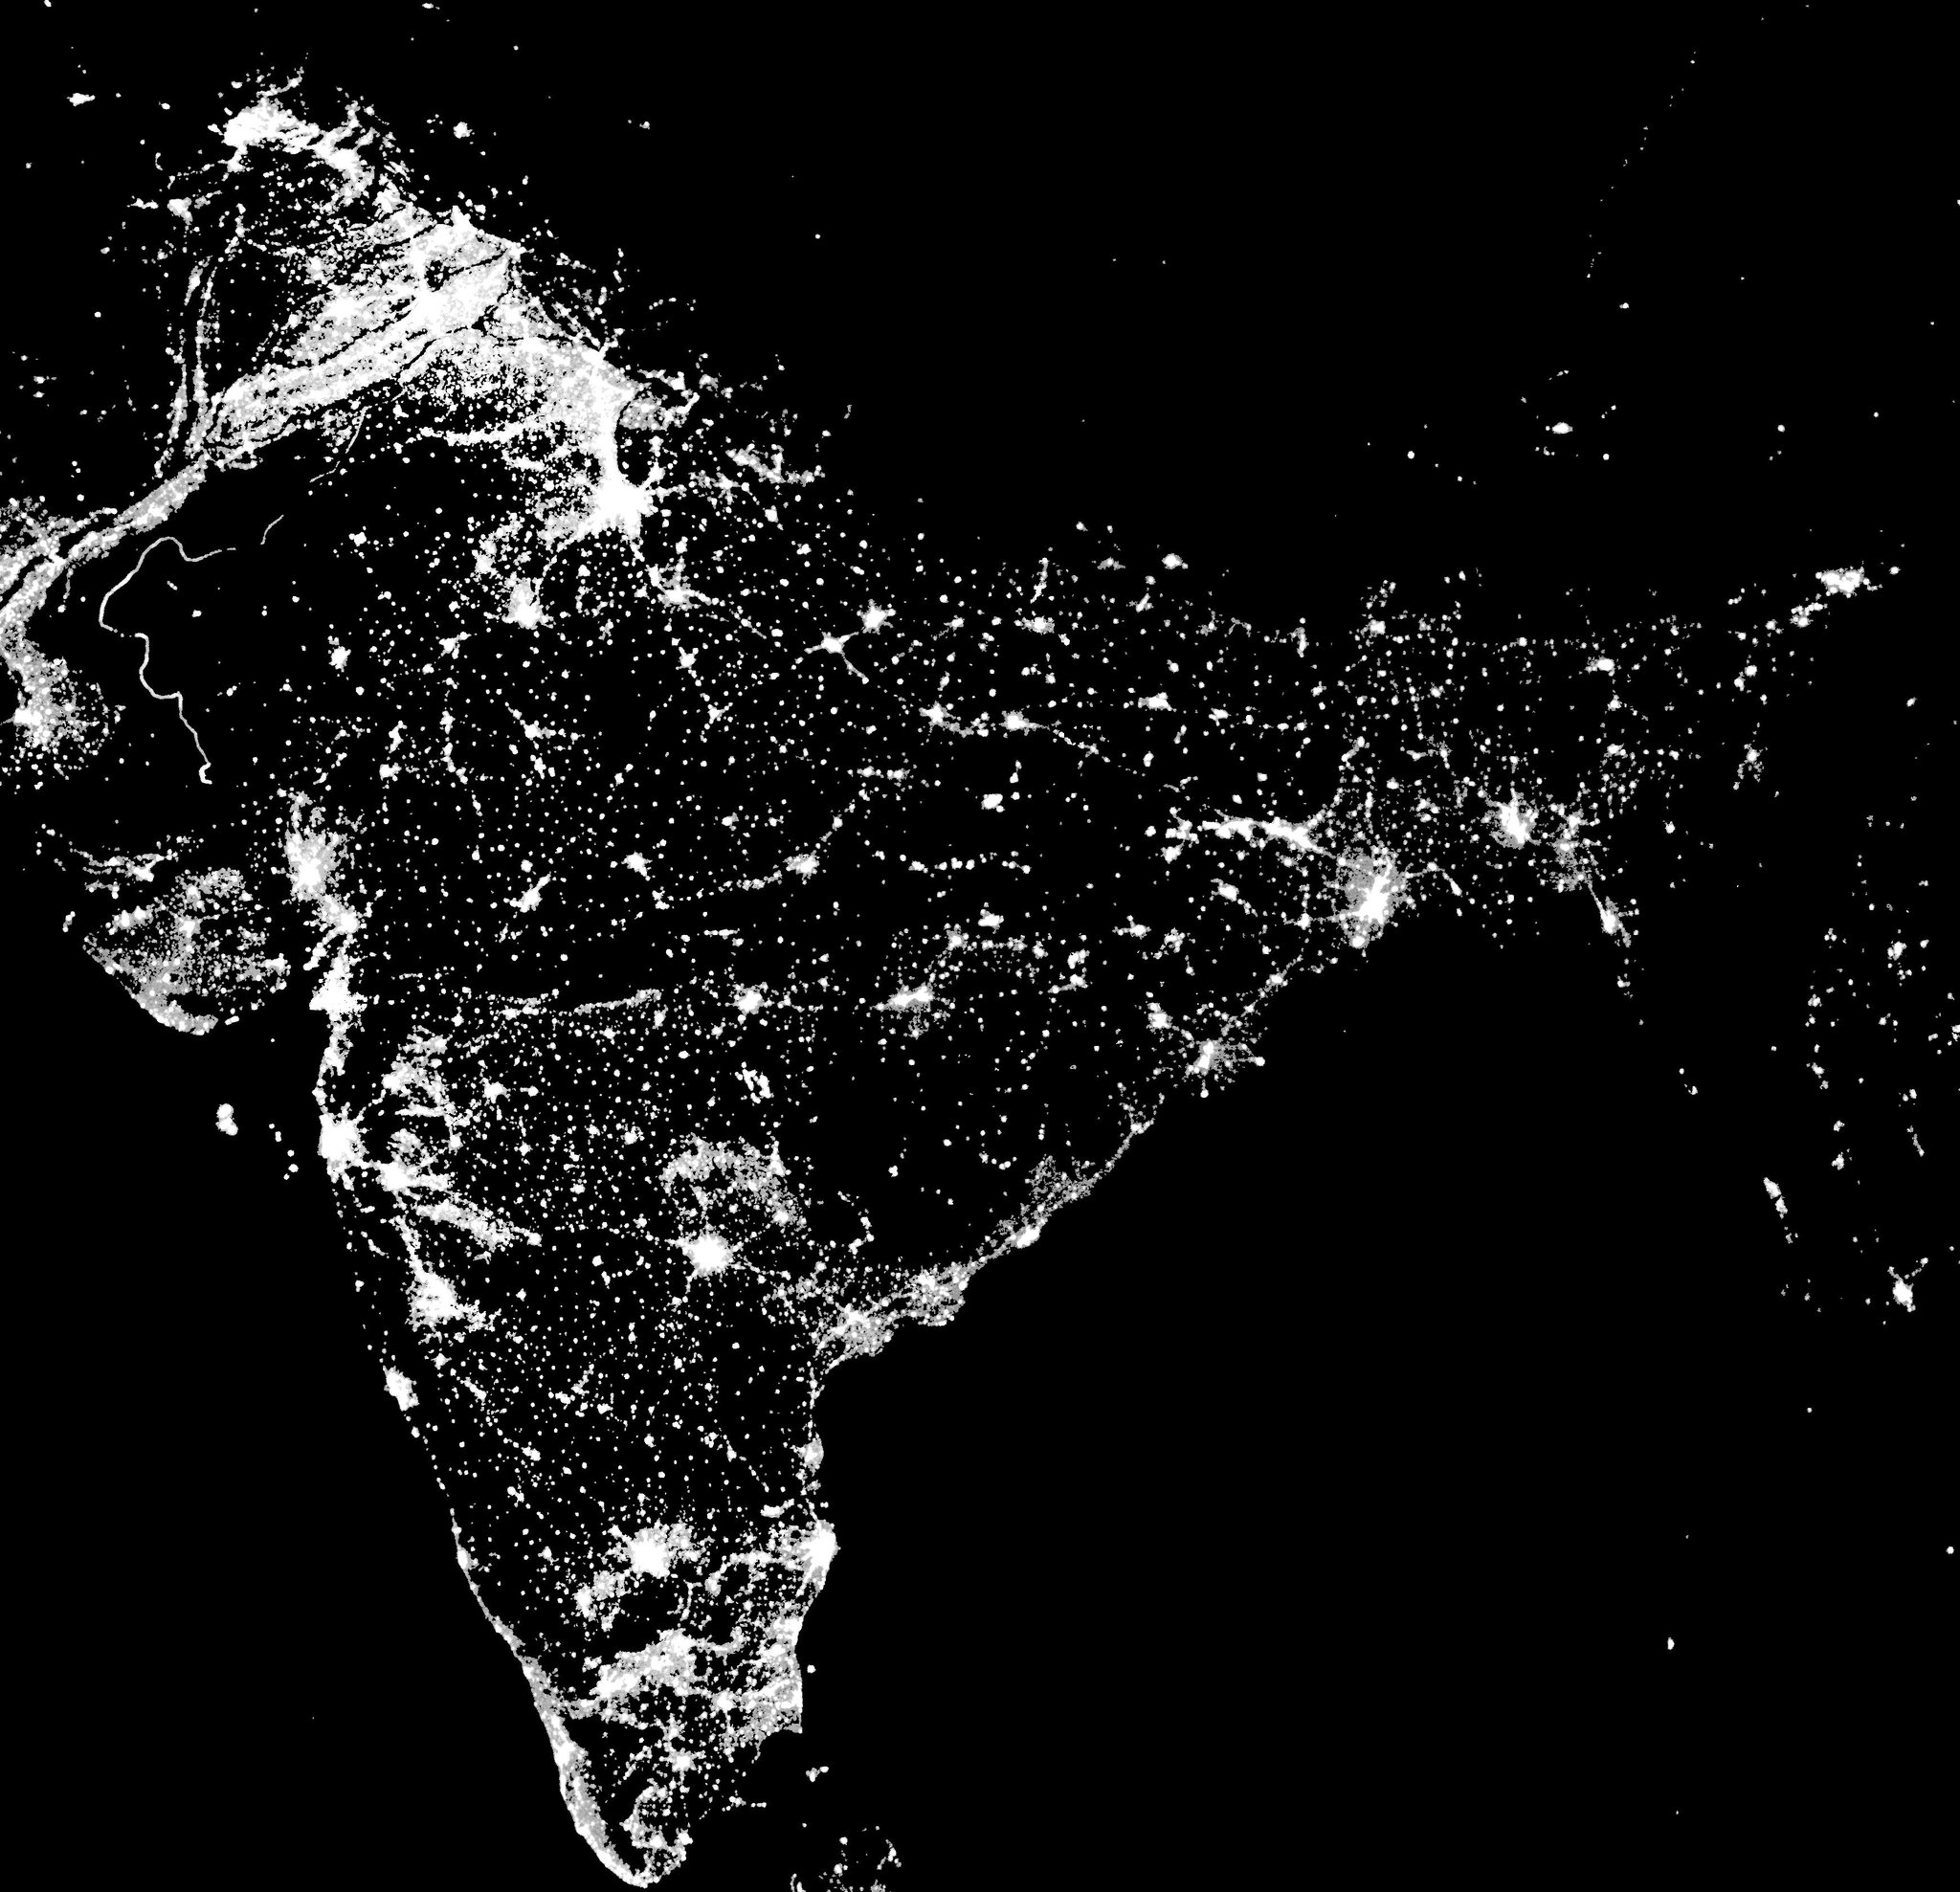 Nasa earth on twitter that beautiful image of nighttime diwali nasa earth on twitter that beautiful image of nighttime diwali lights in india its a really old fake httpstu3wtmayxyo httpstbyrr4sxjwz gumiabroncs Image collections